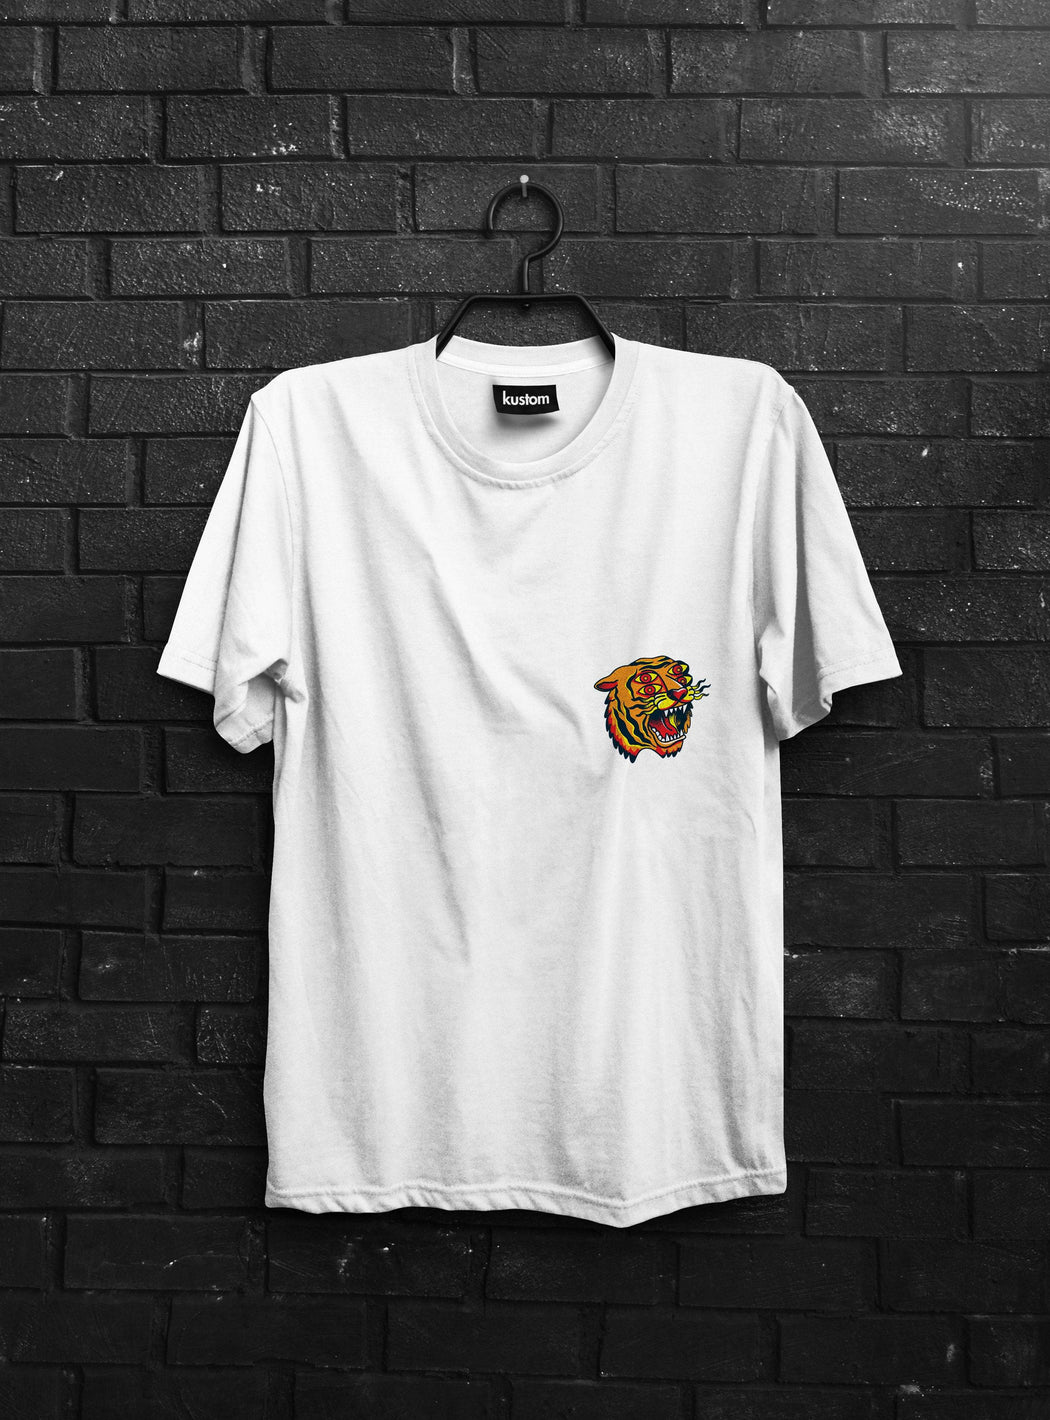 4 Eyes Tiger Tee - Kustom: Tees Factory